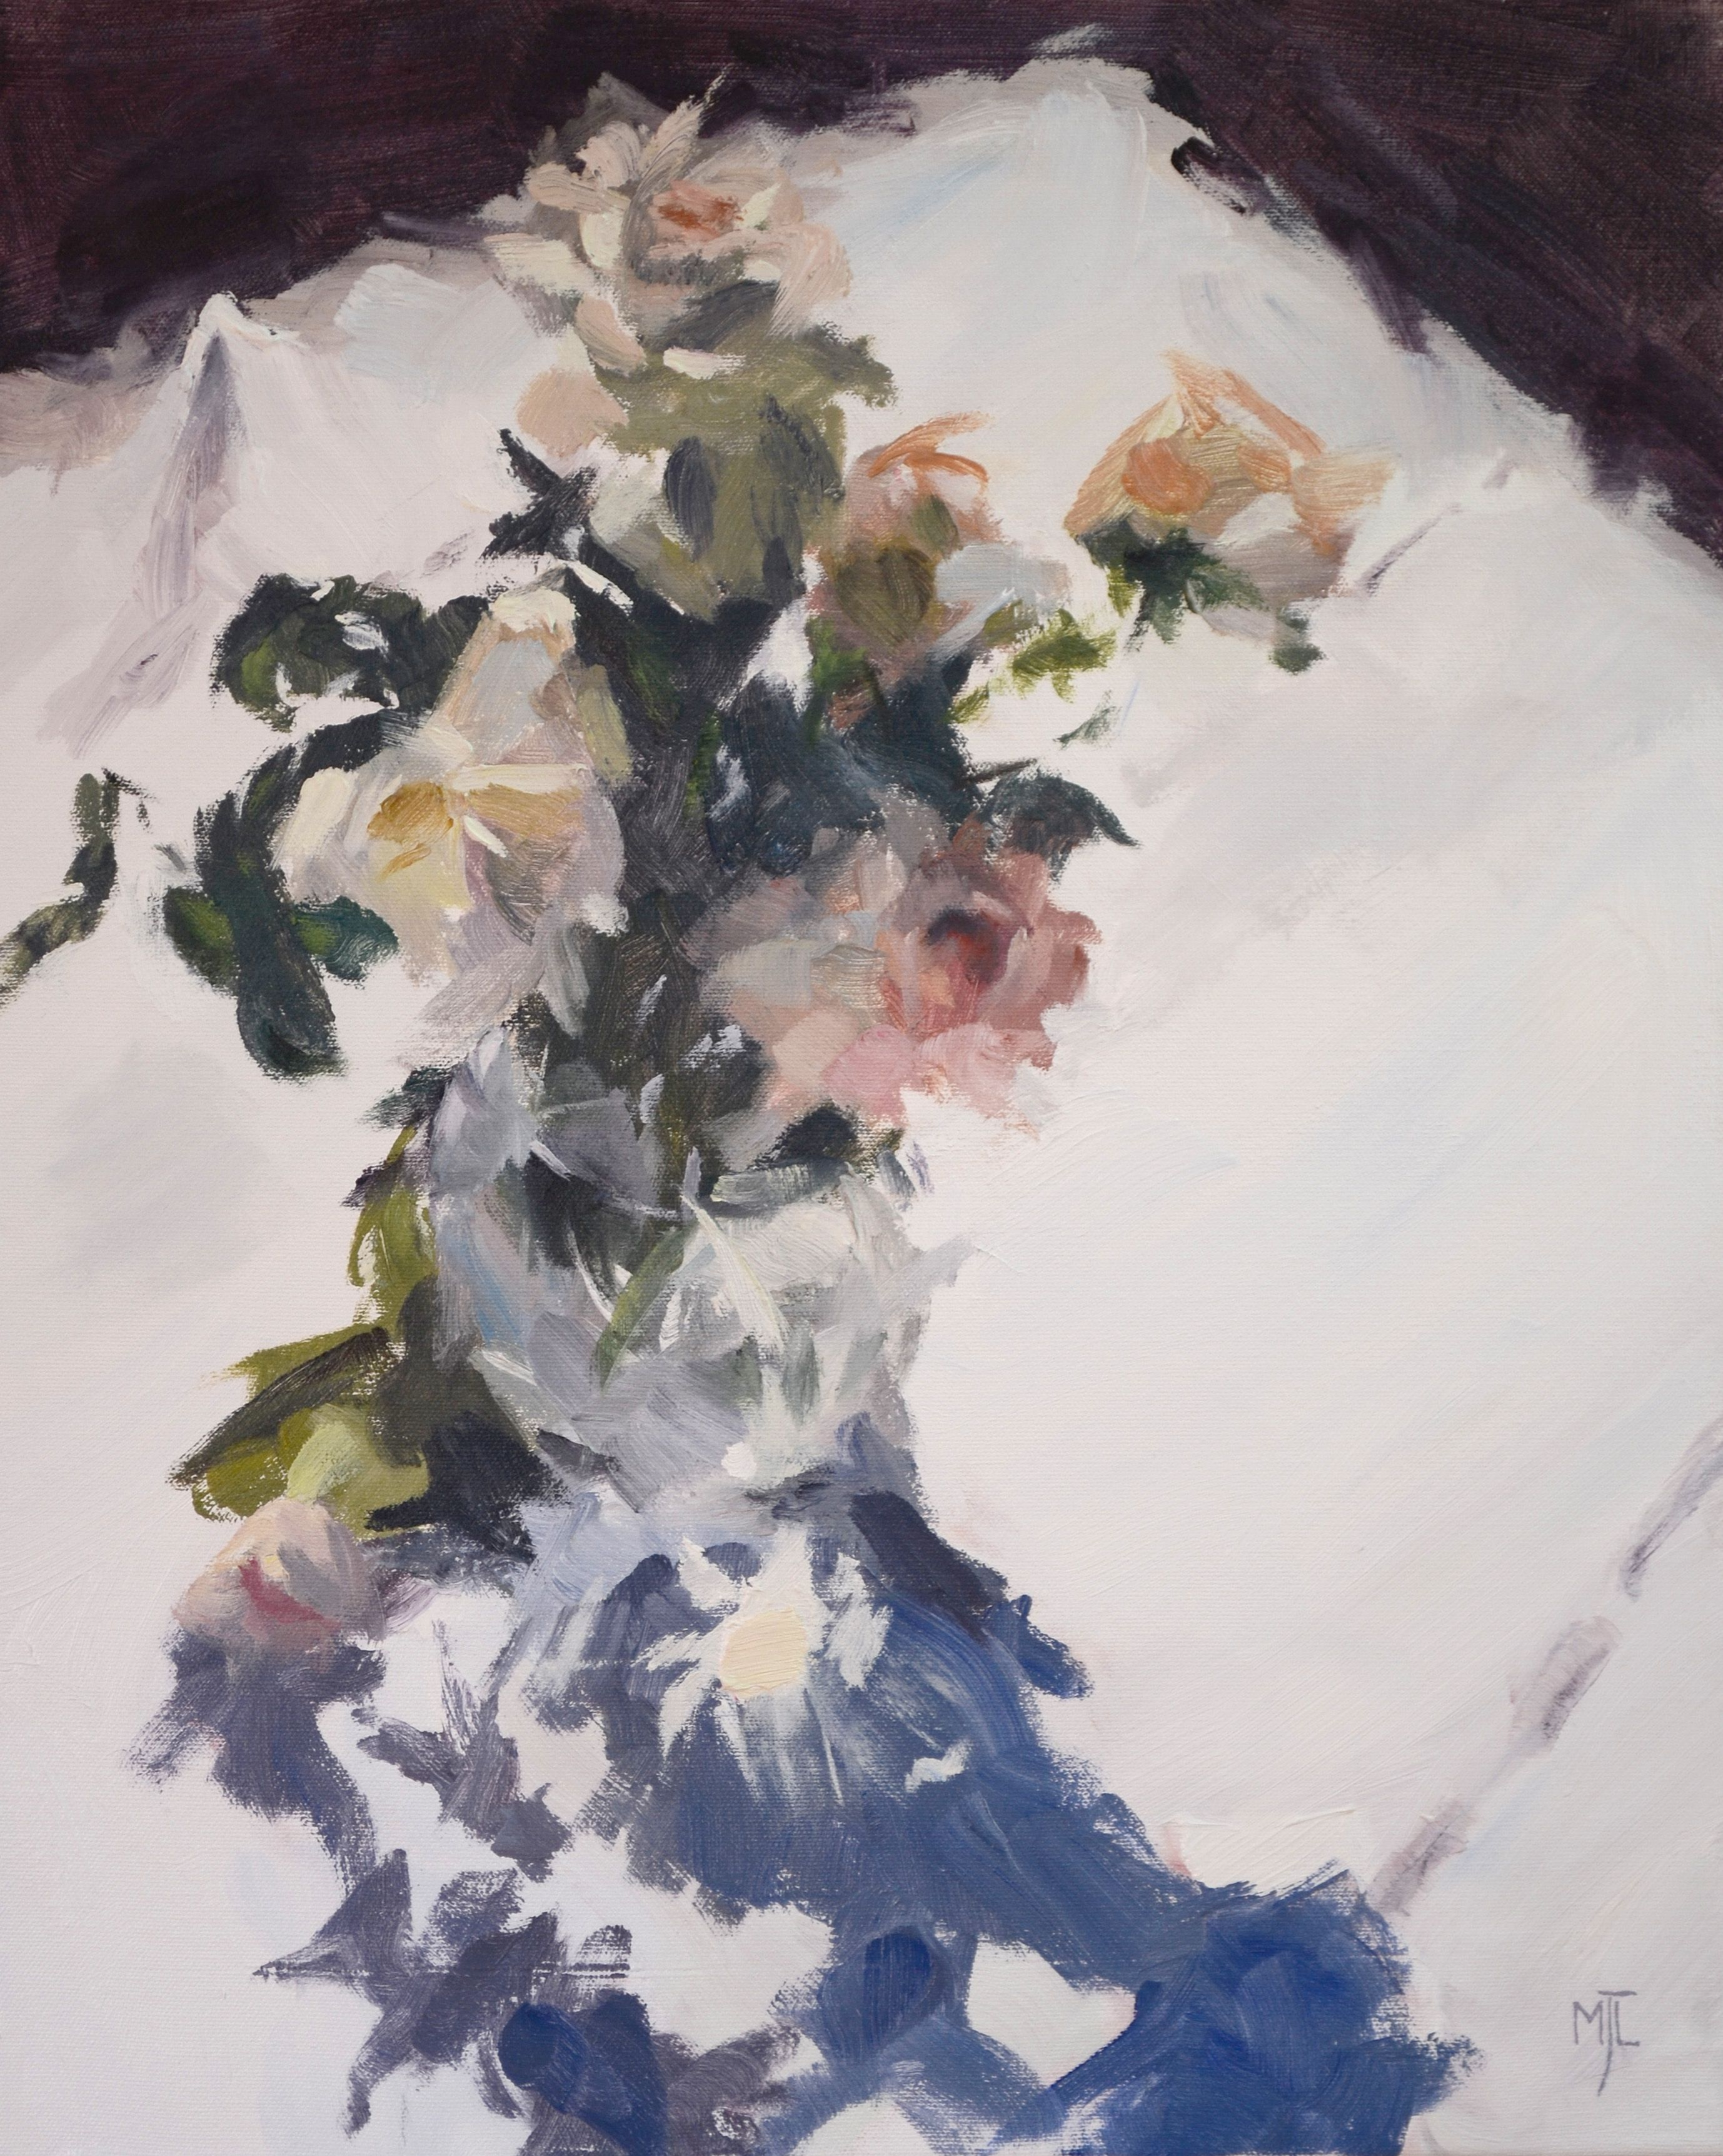 Flowers on White Tablecloth, oil on canvas,  50x40cm, 20x16in